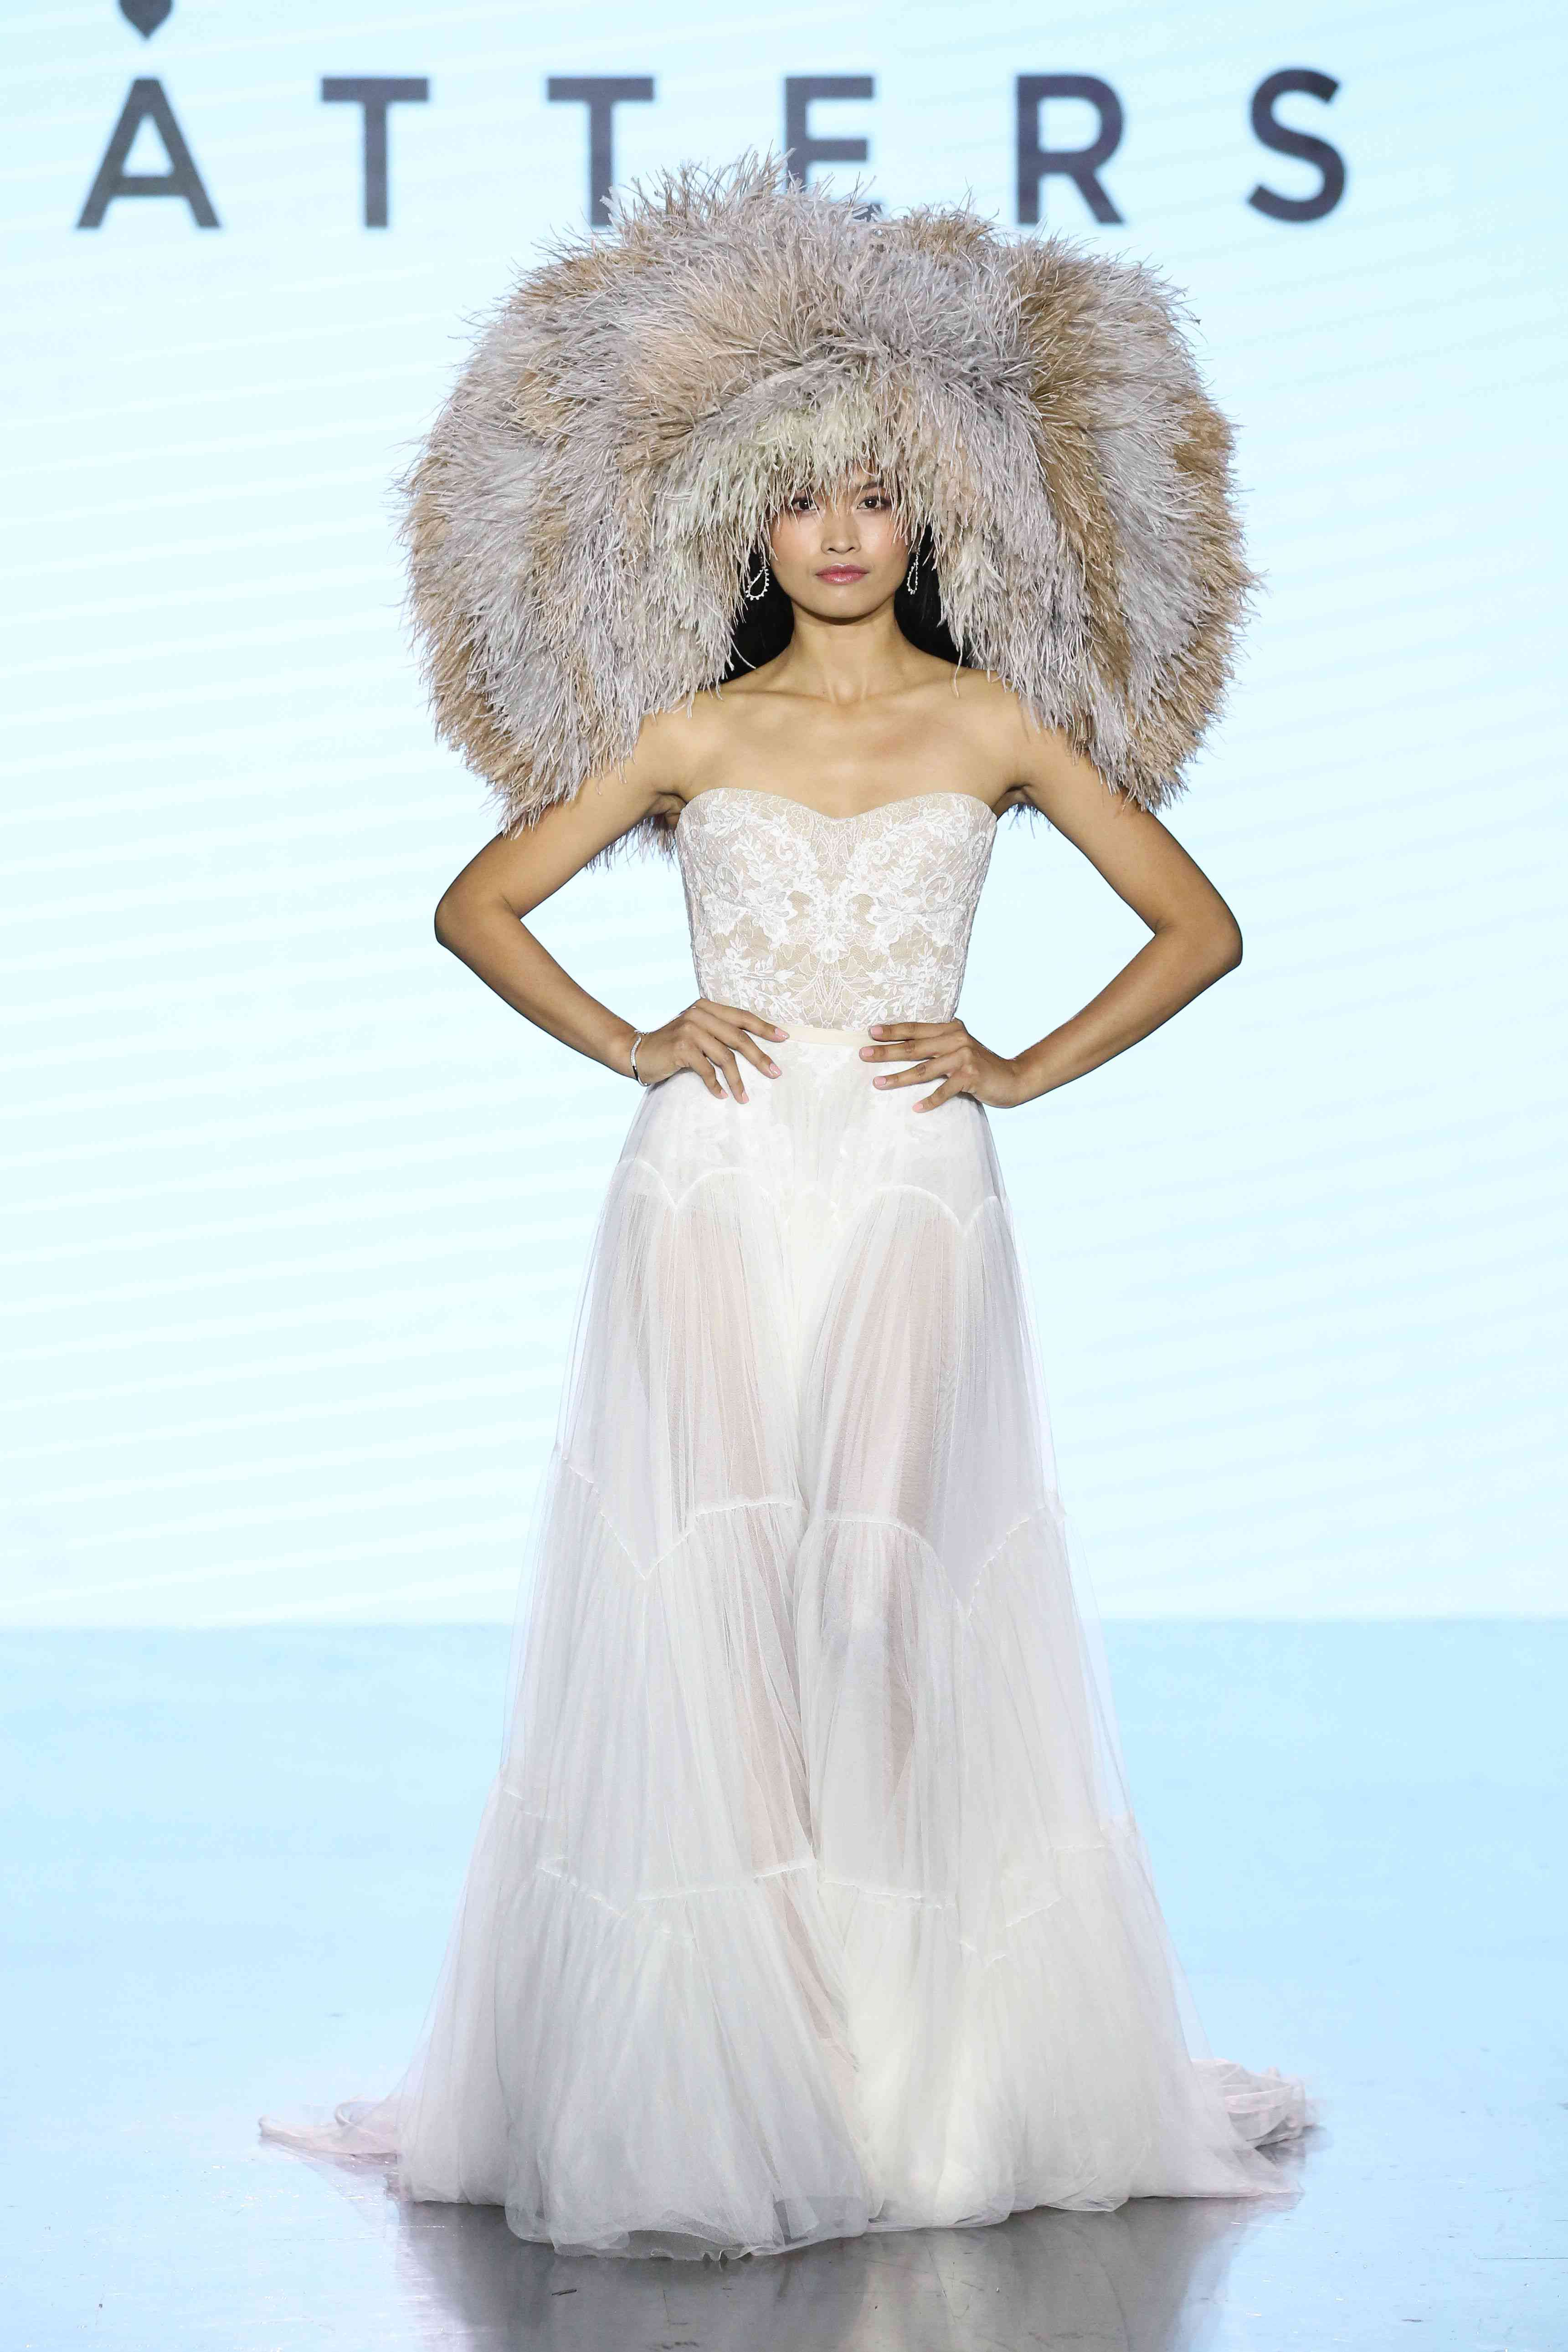 Model on runway in strapless tulle gown with lace bodice